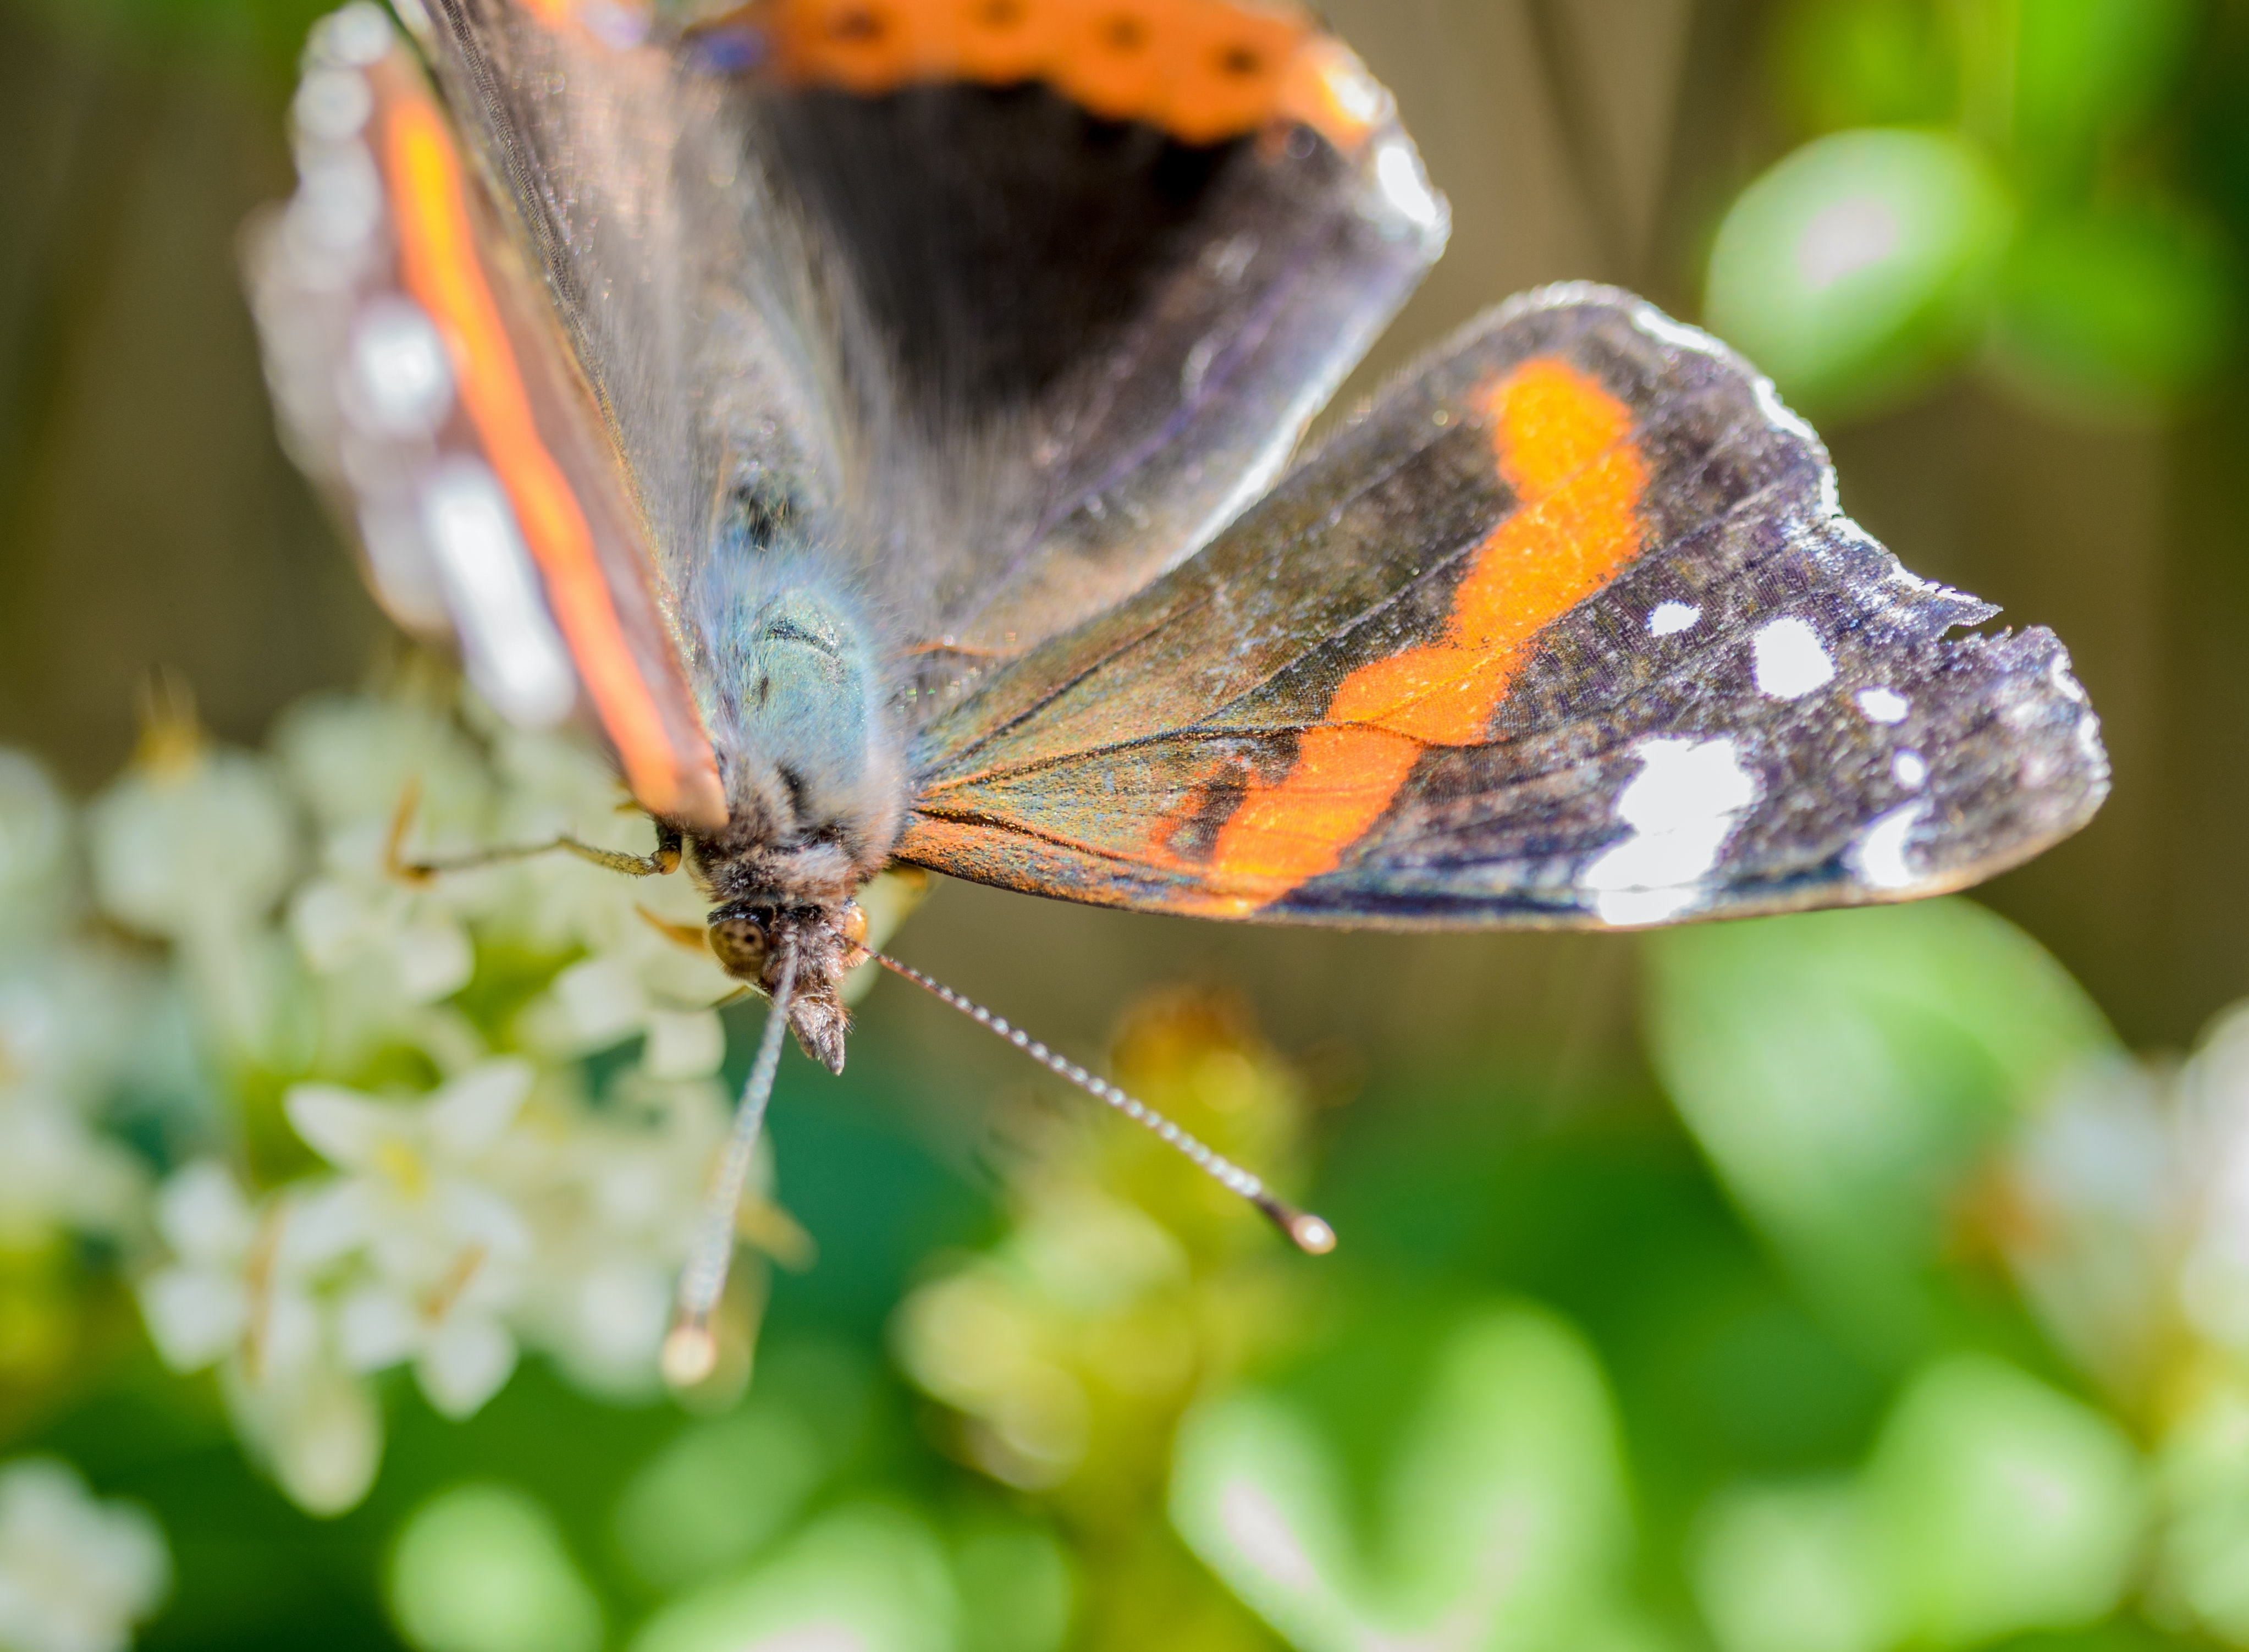 Blurred shot of a butterfly in a garden.